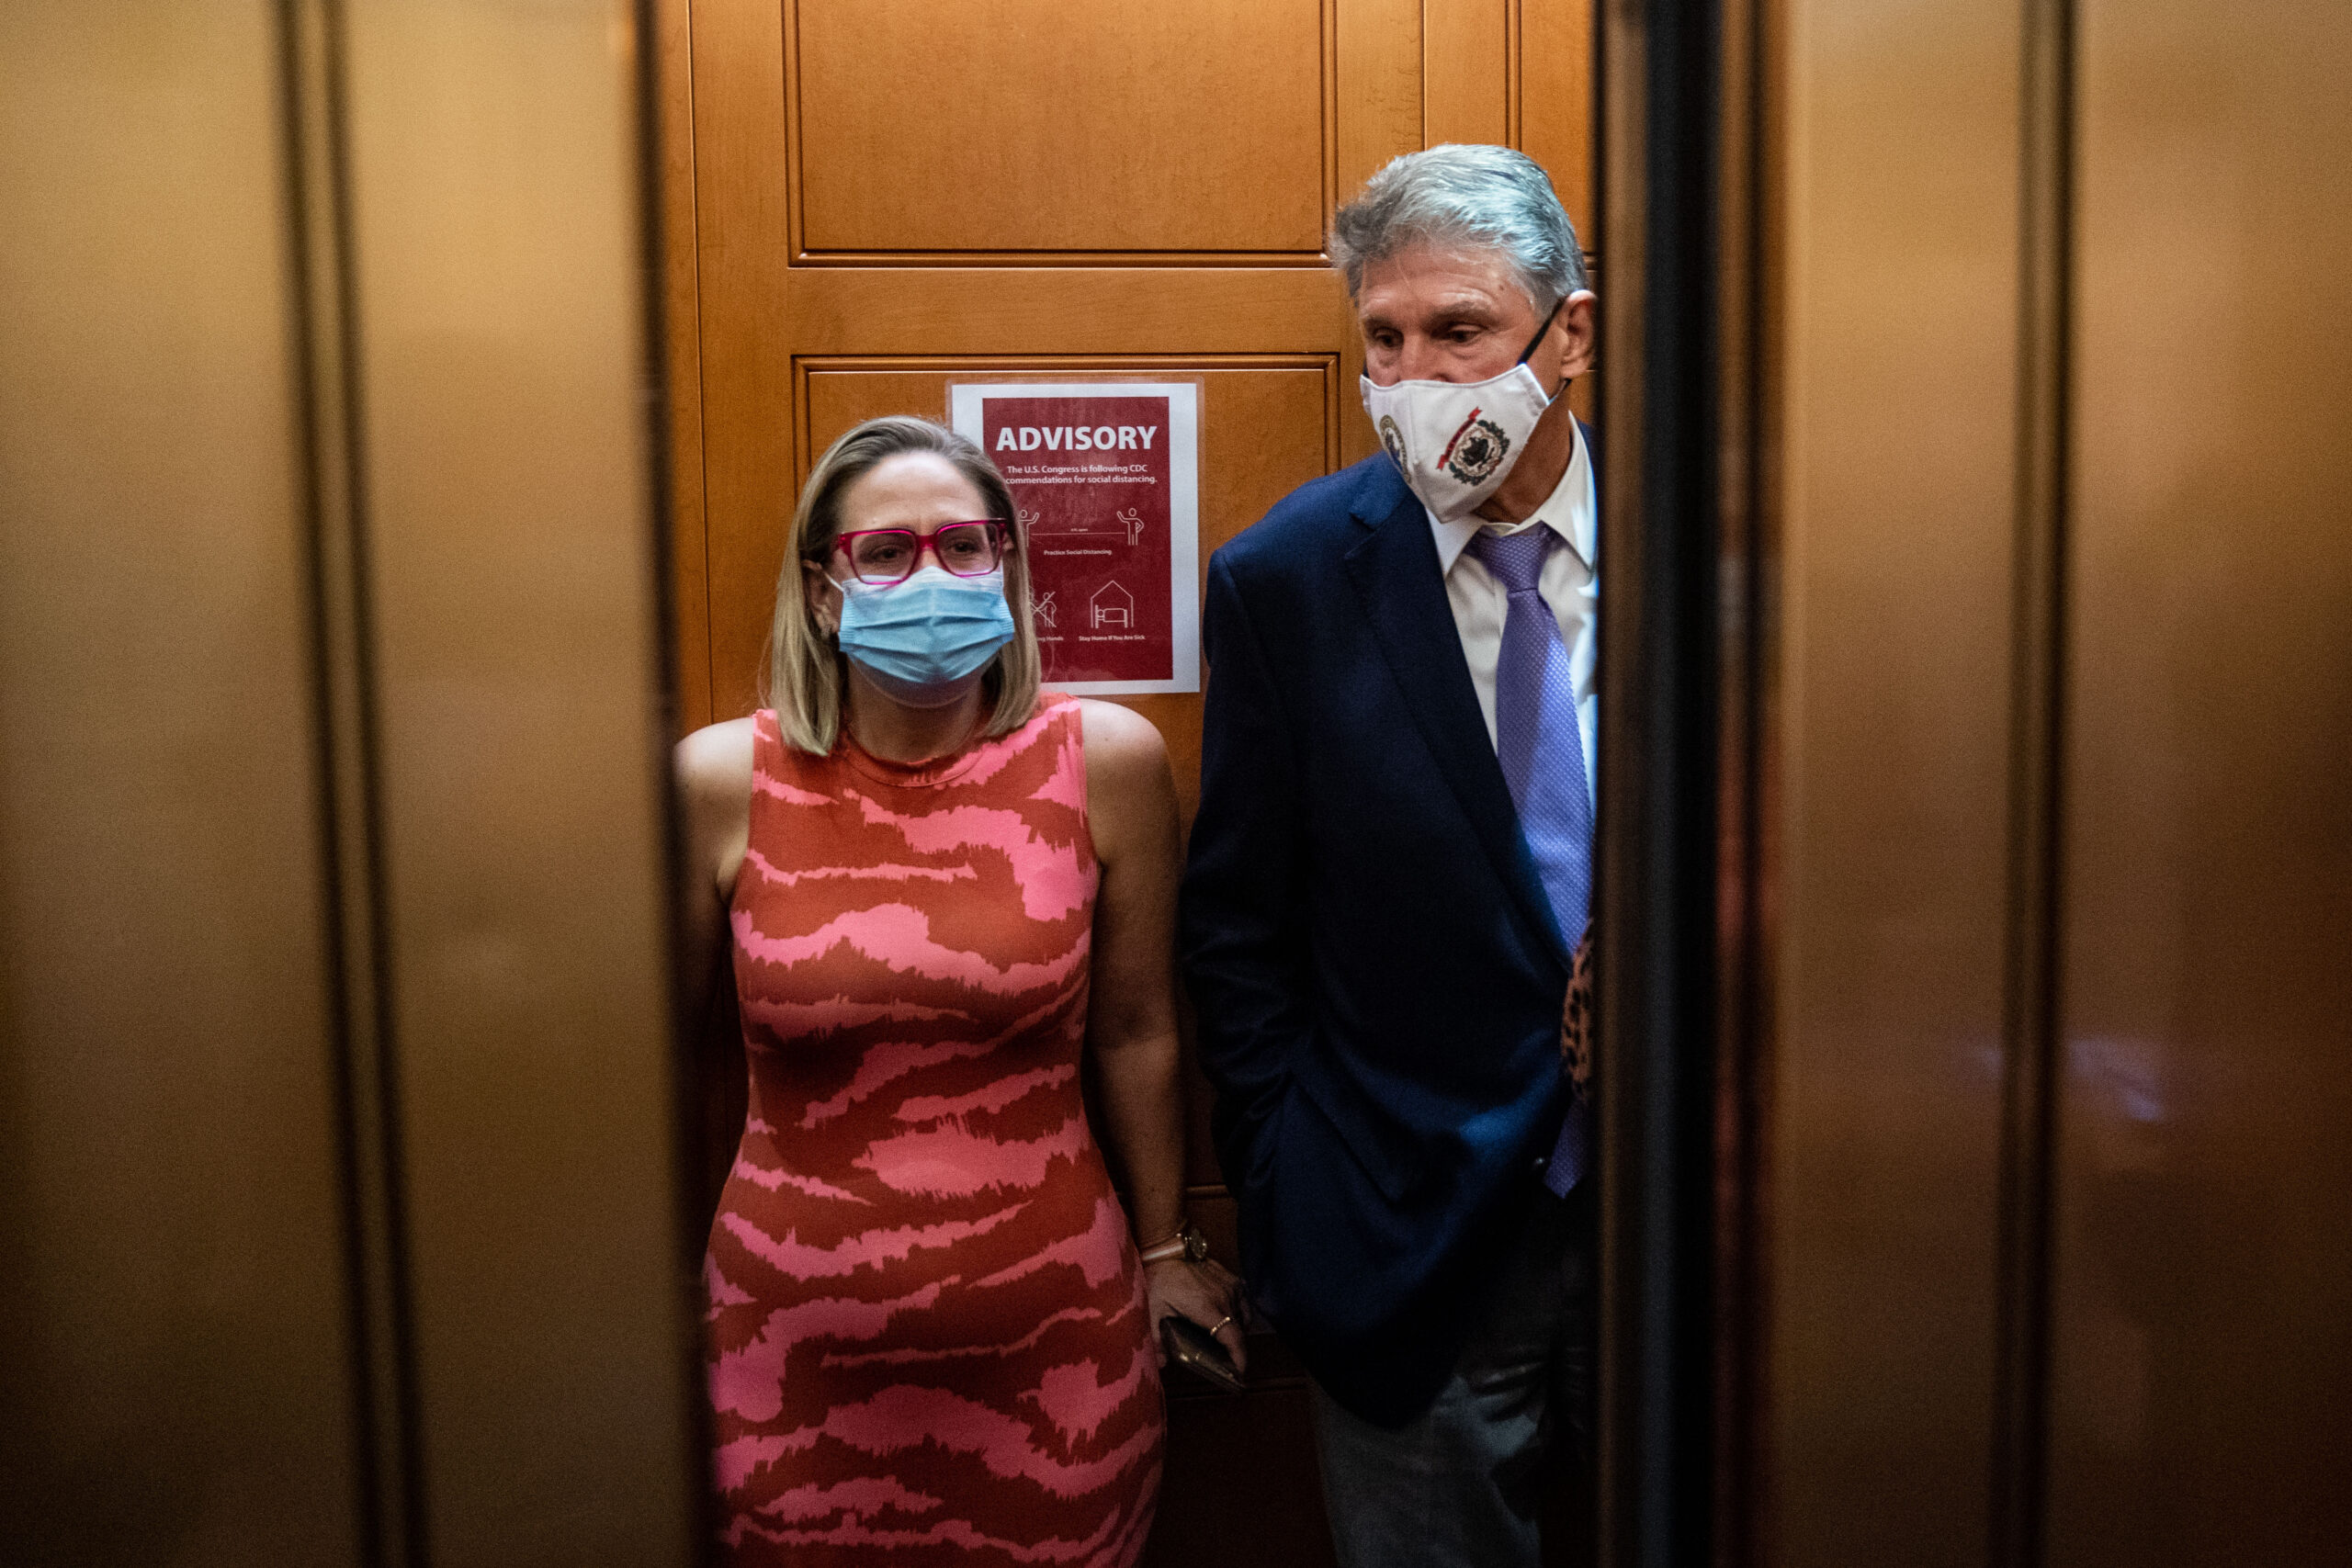 Sen. Kyrsten Sinema (D-Ariz.) and Sen. Joe Manchin (D-W.Va.) catch and an elevator to go to the Senate Chamber to vote, in the U.S. Capitol on Thursday, Sept. 30, 2021 in Washington, D.C. Credit: Kent Nishimura / Los Angeles Times via Getty Images